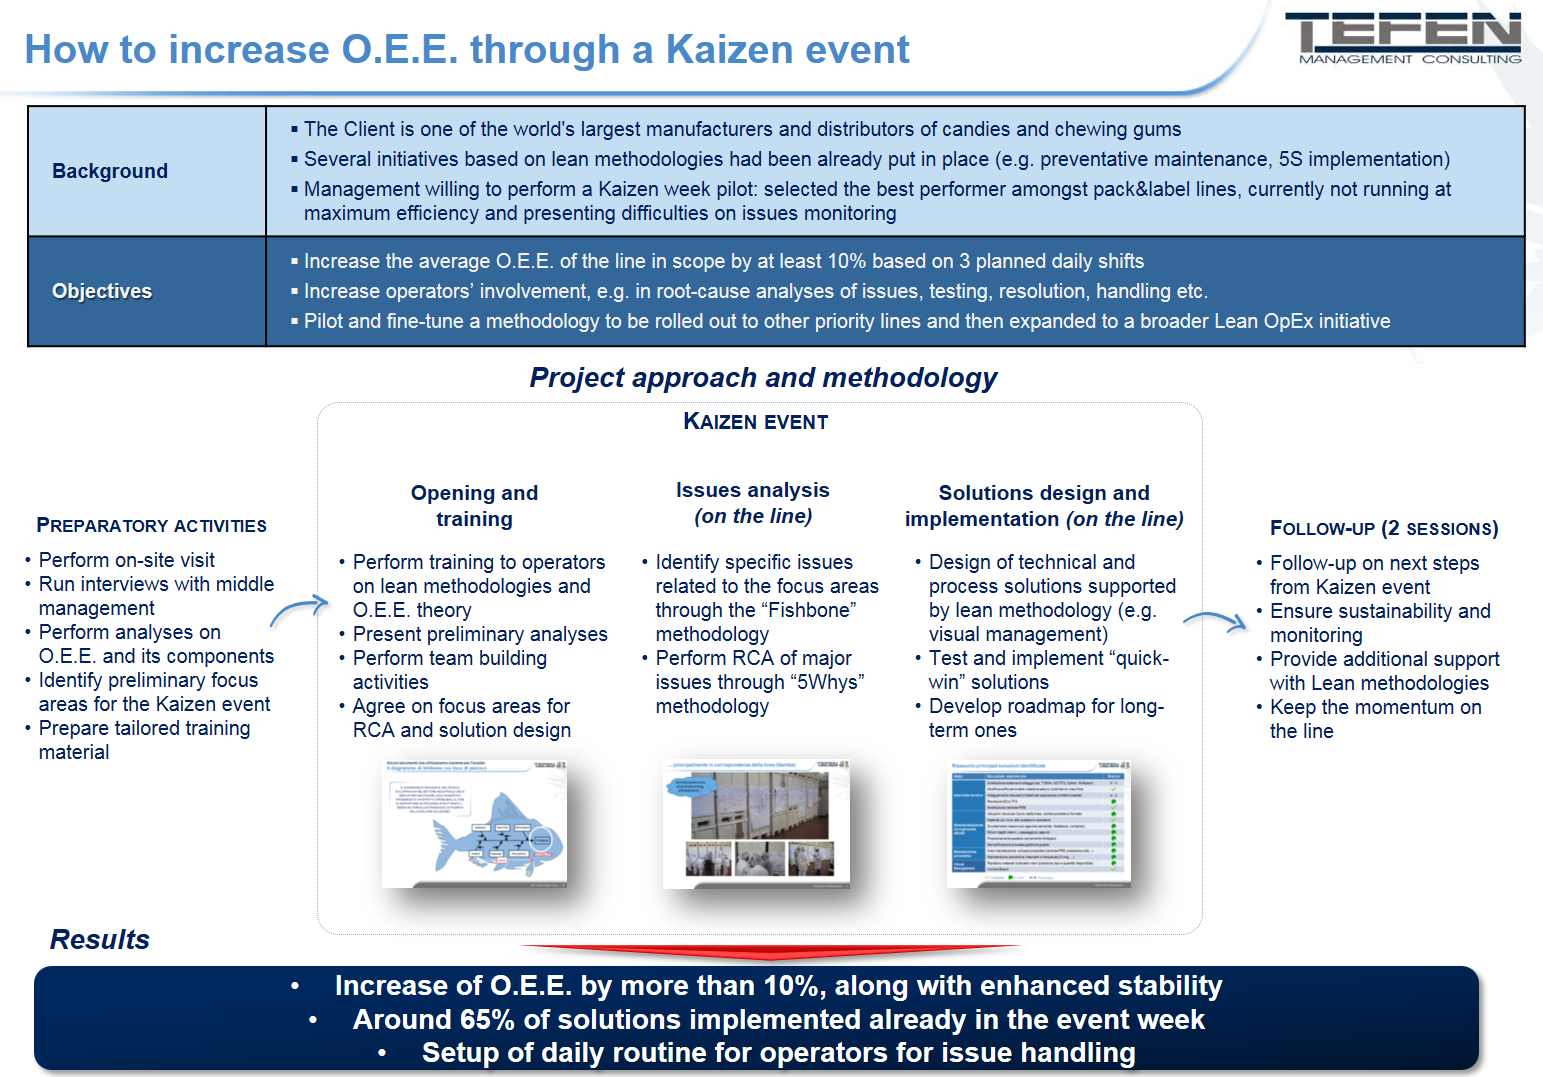 How to Increase O.E.E. Thorugh a Kaizen event - a One Pager